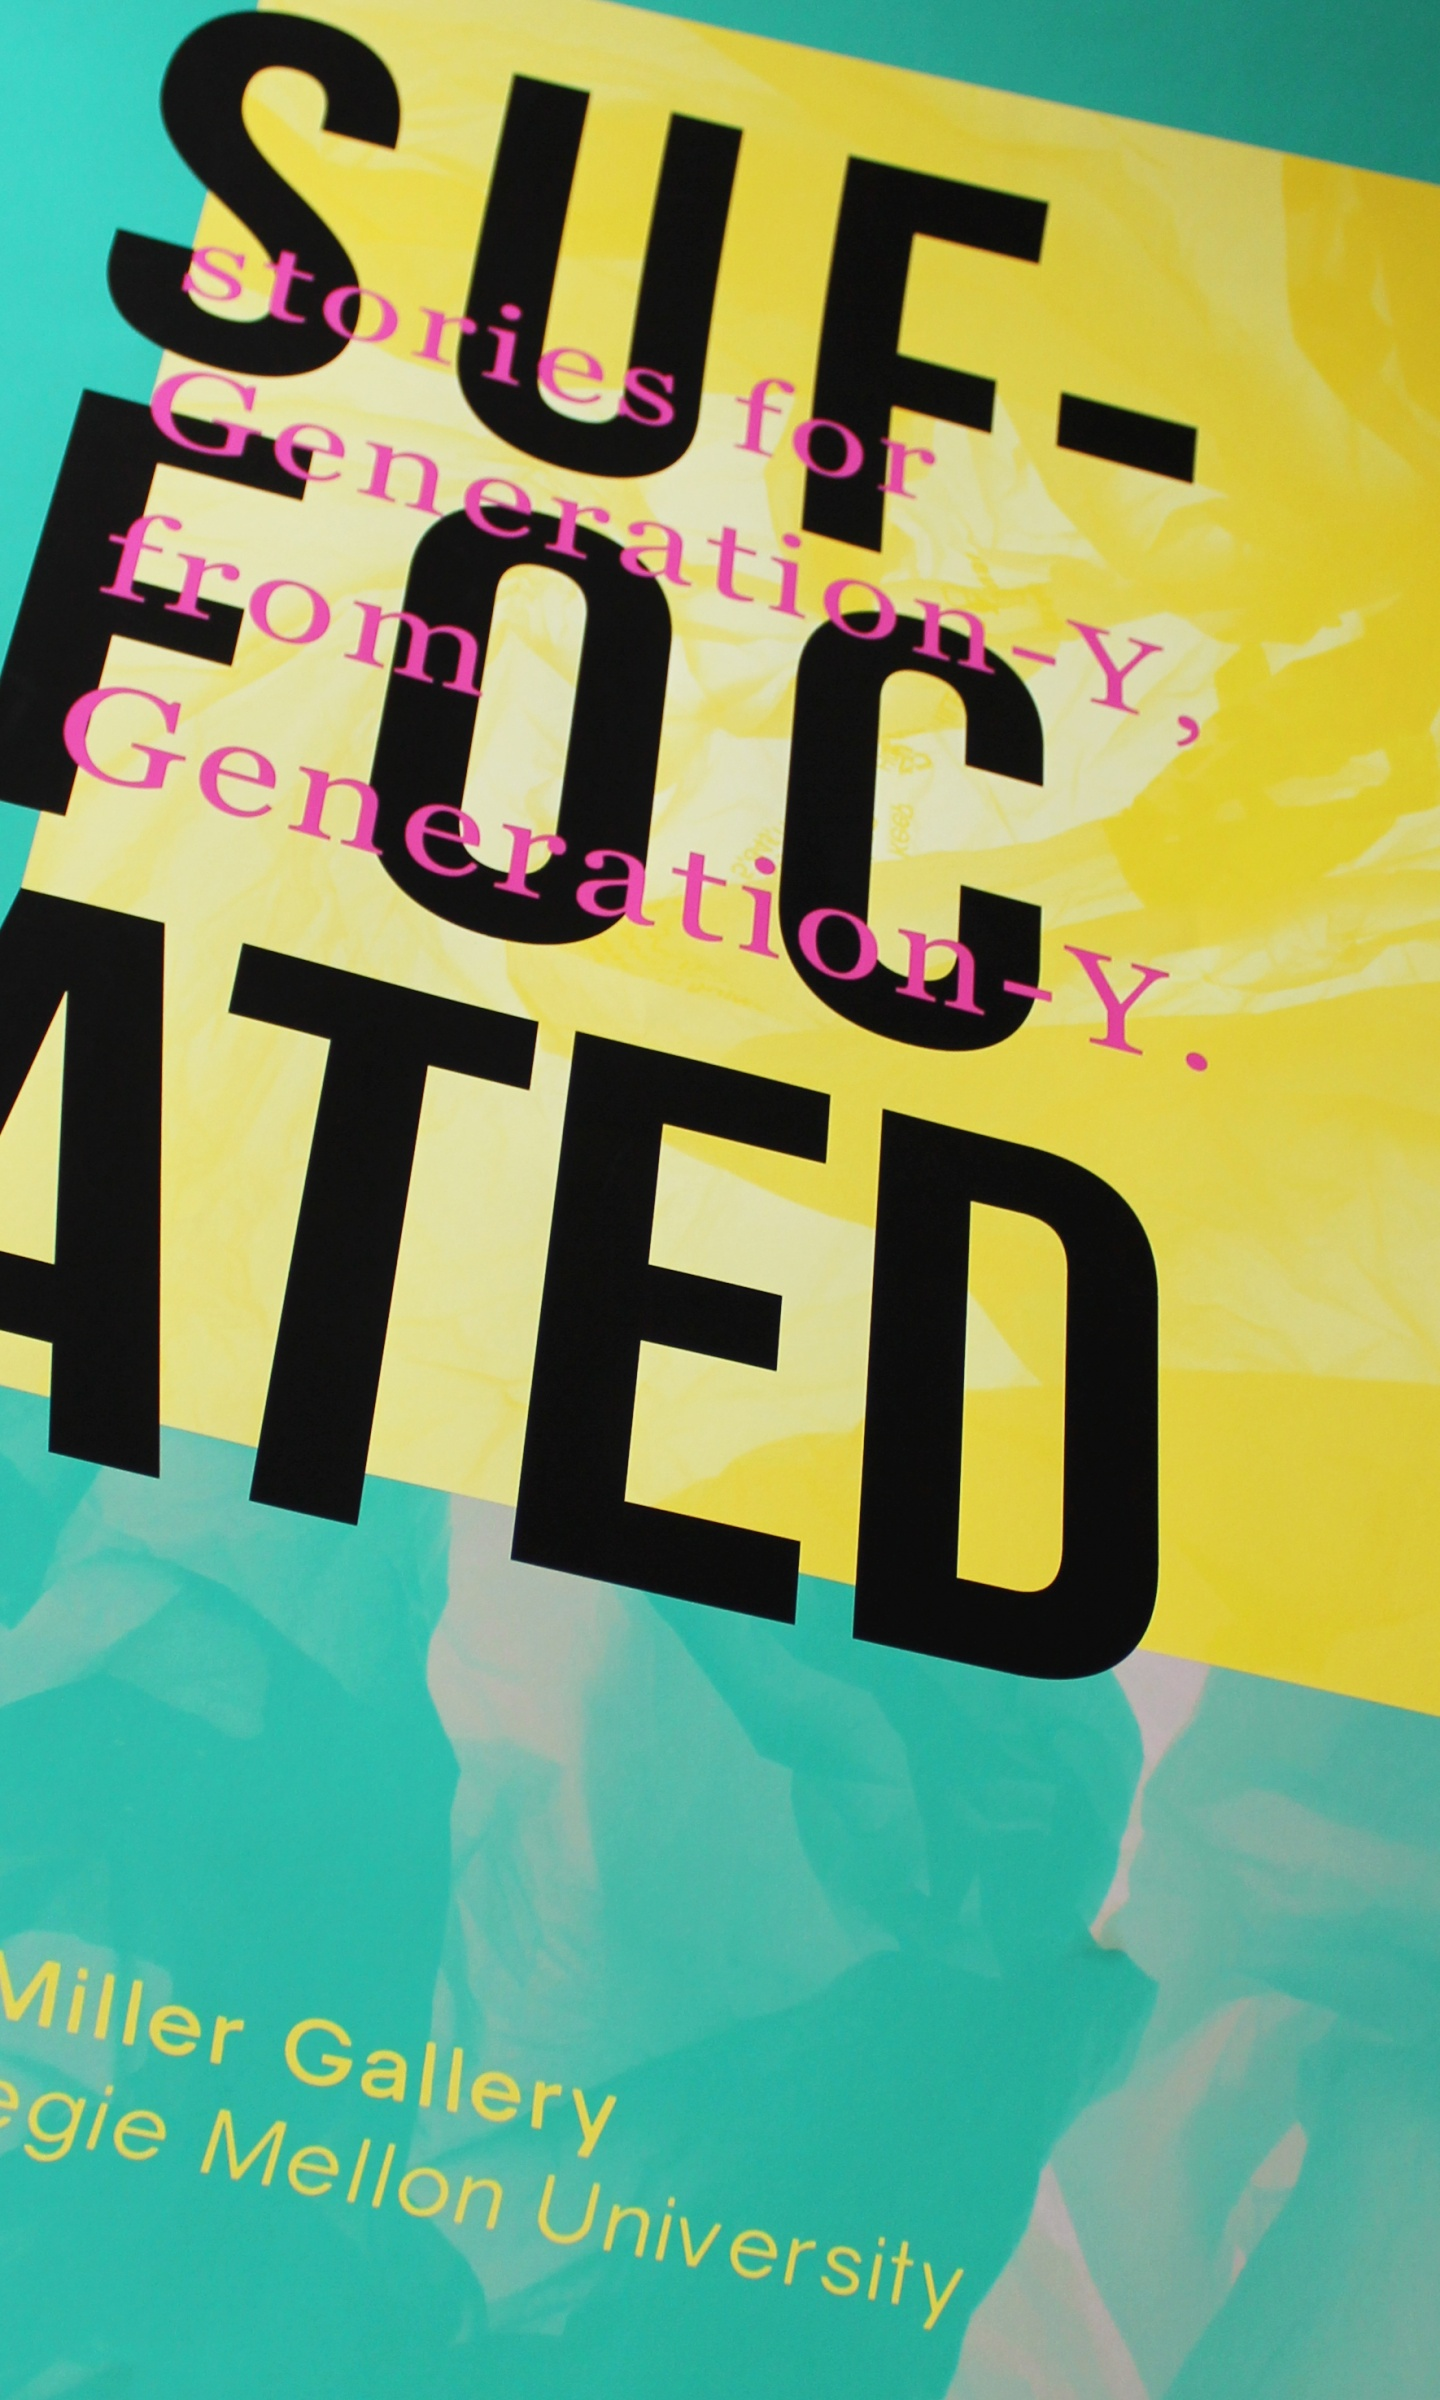 Suffocated: Print